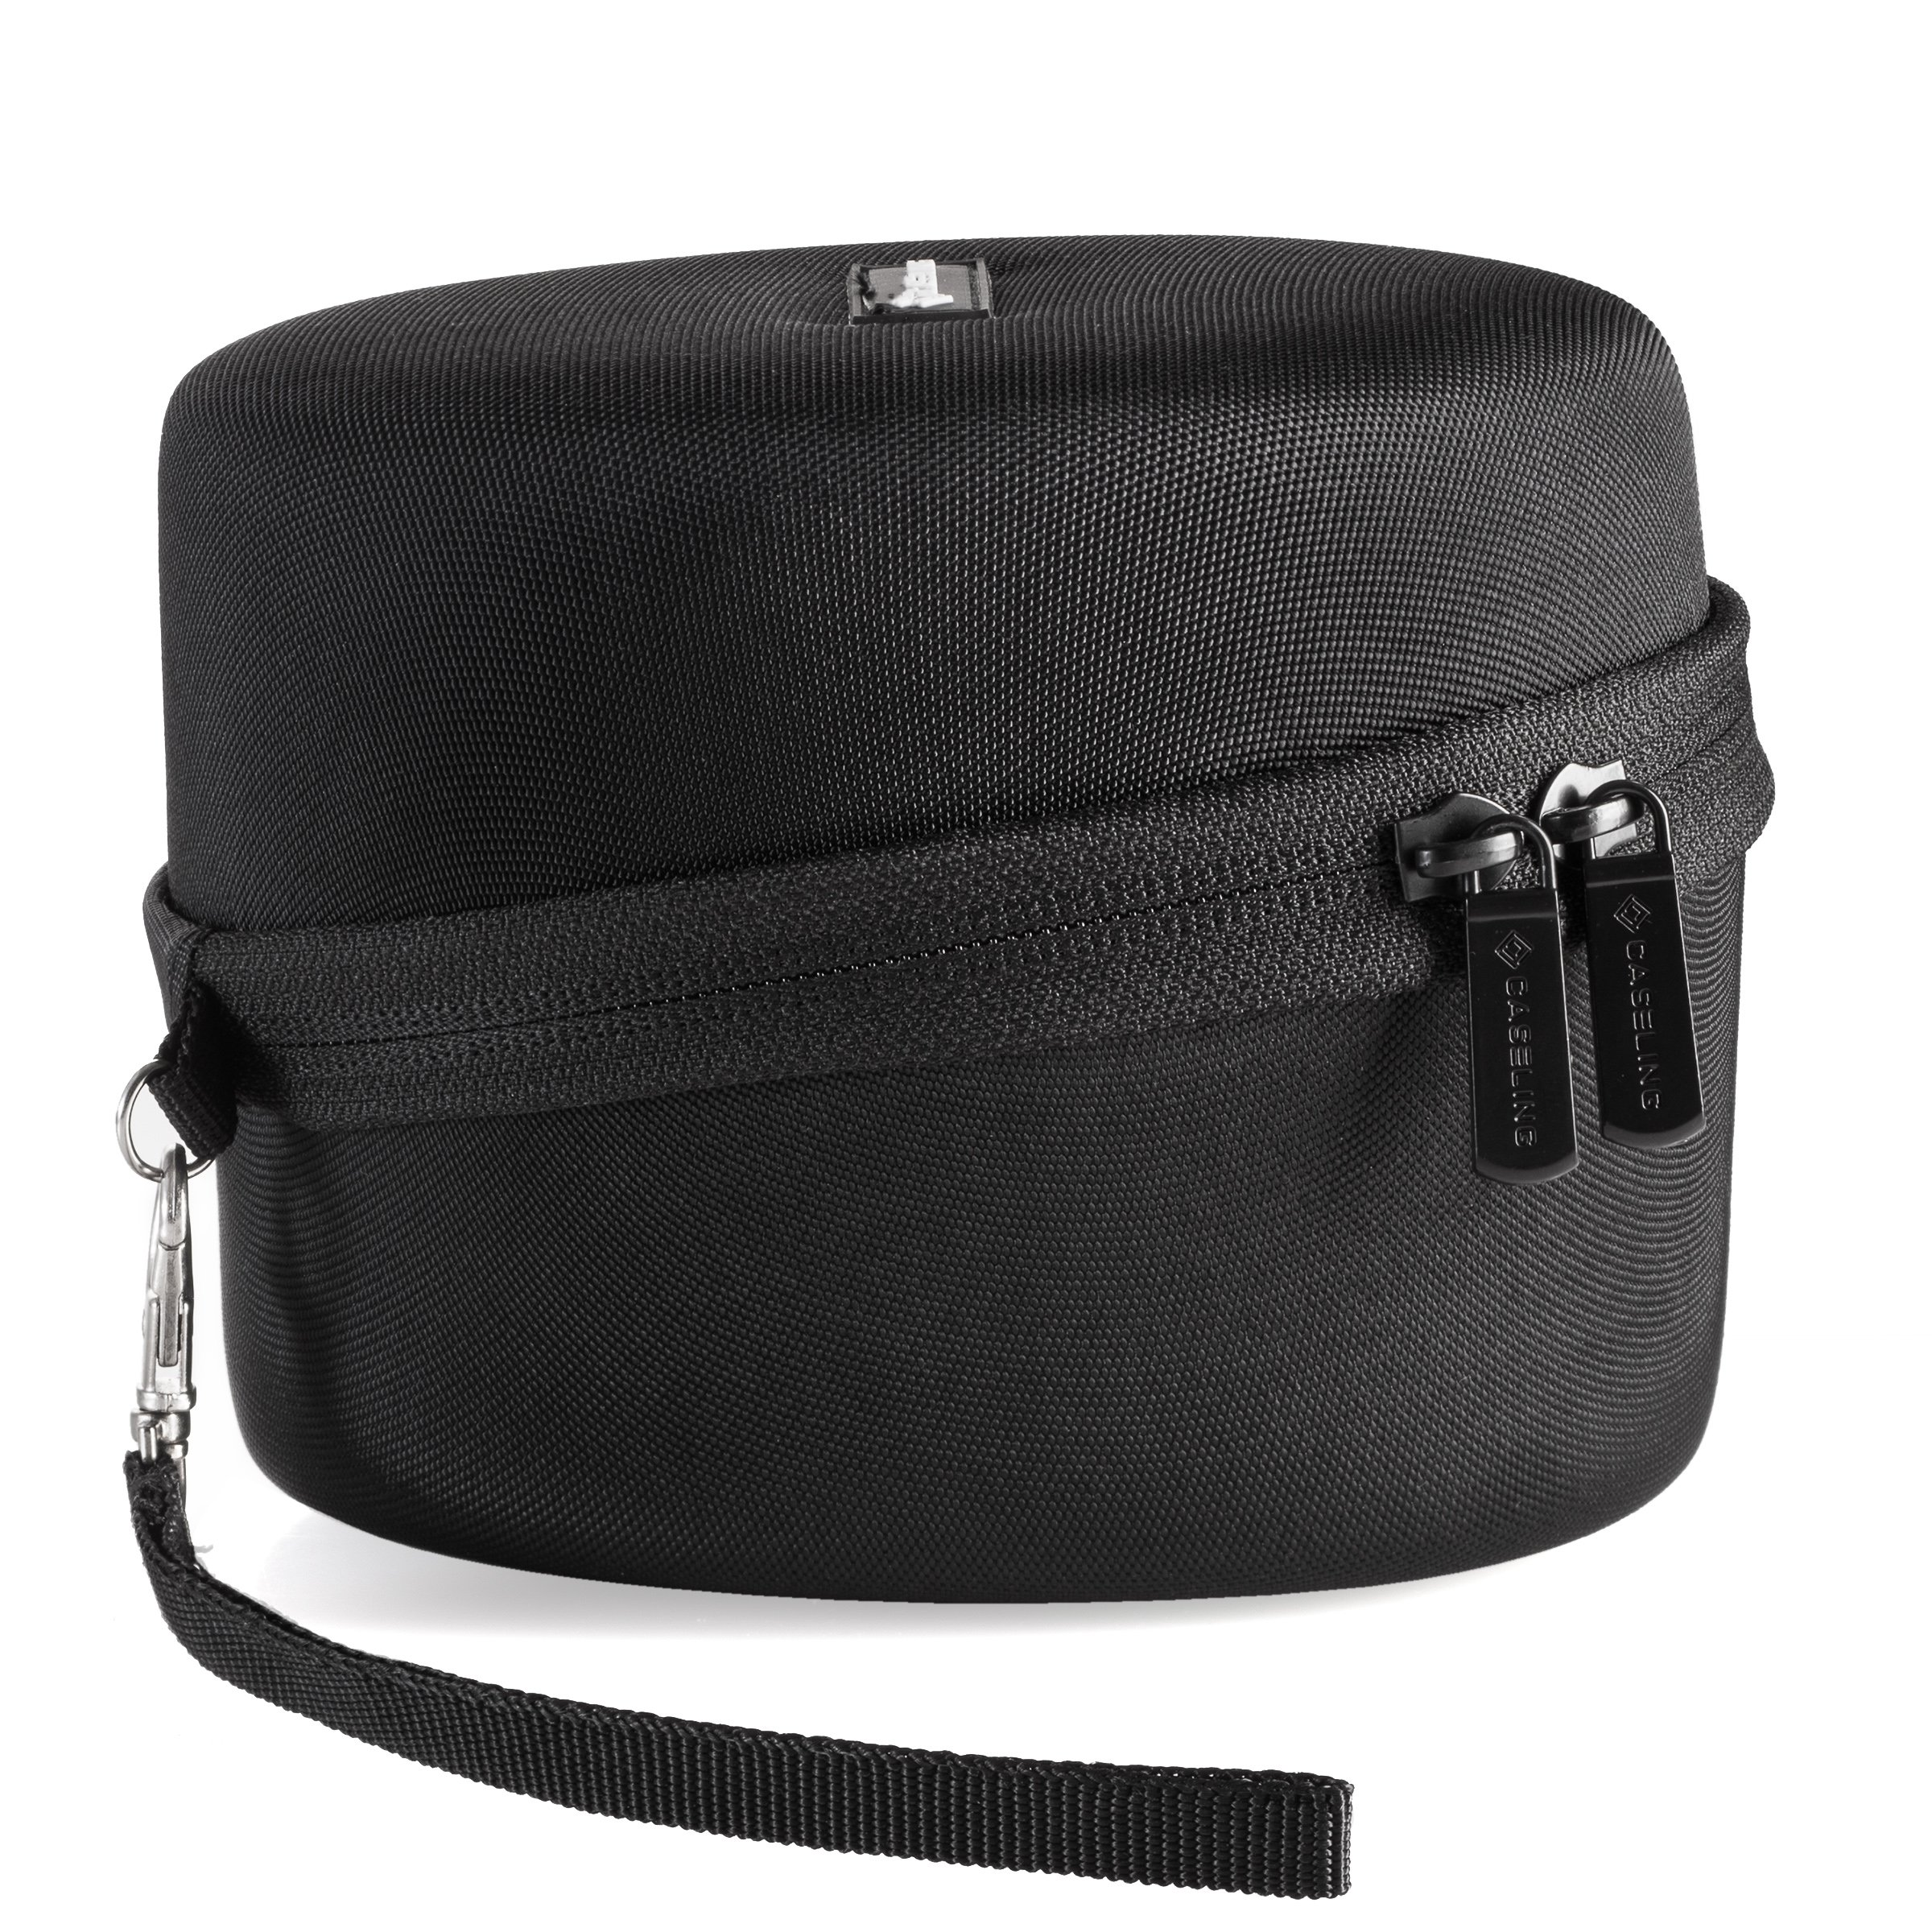 caseling CASE fits Walker's Game Ear Razor Slim Electronic Hearing Protection Muff, Includes Mesh Pocket for Accessories